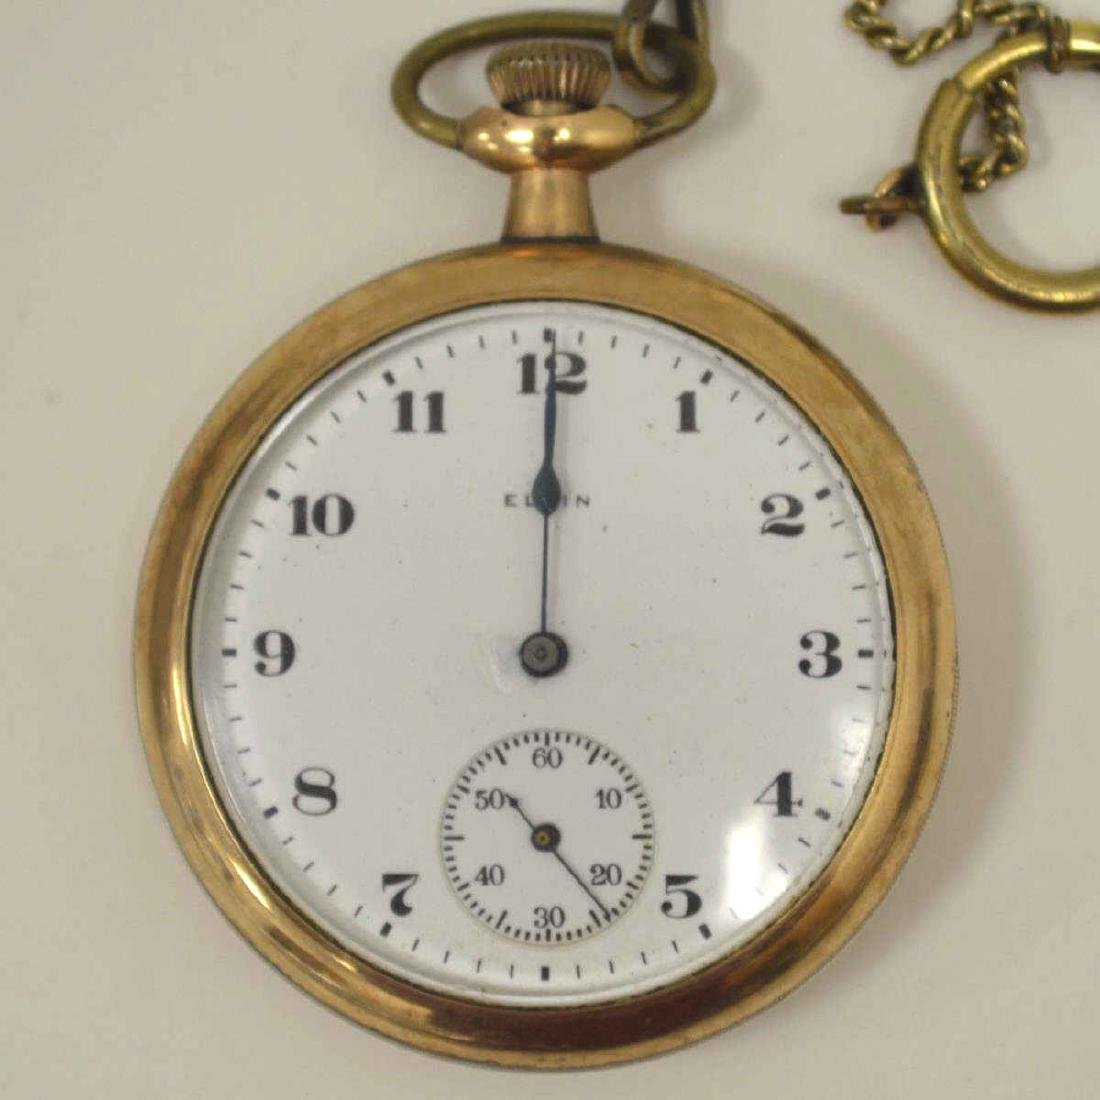 Lot of gold plated pocket watches - 7